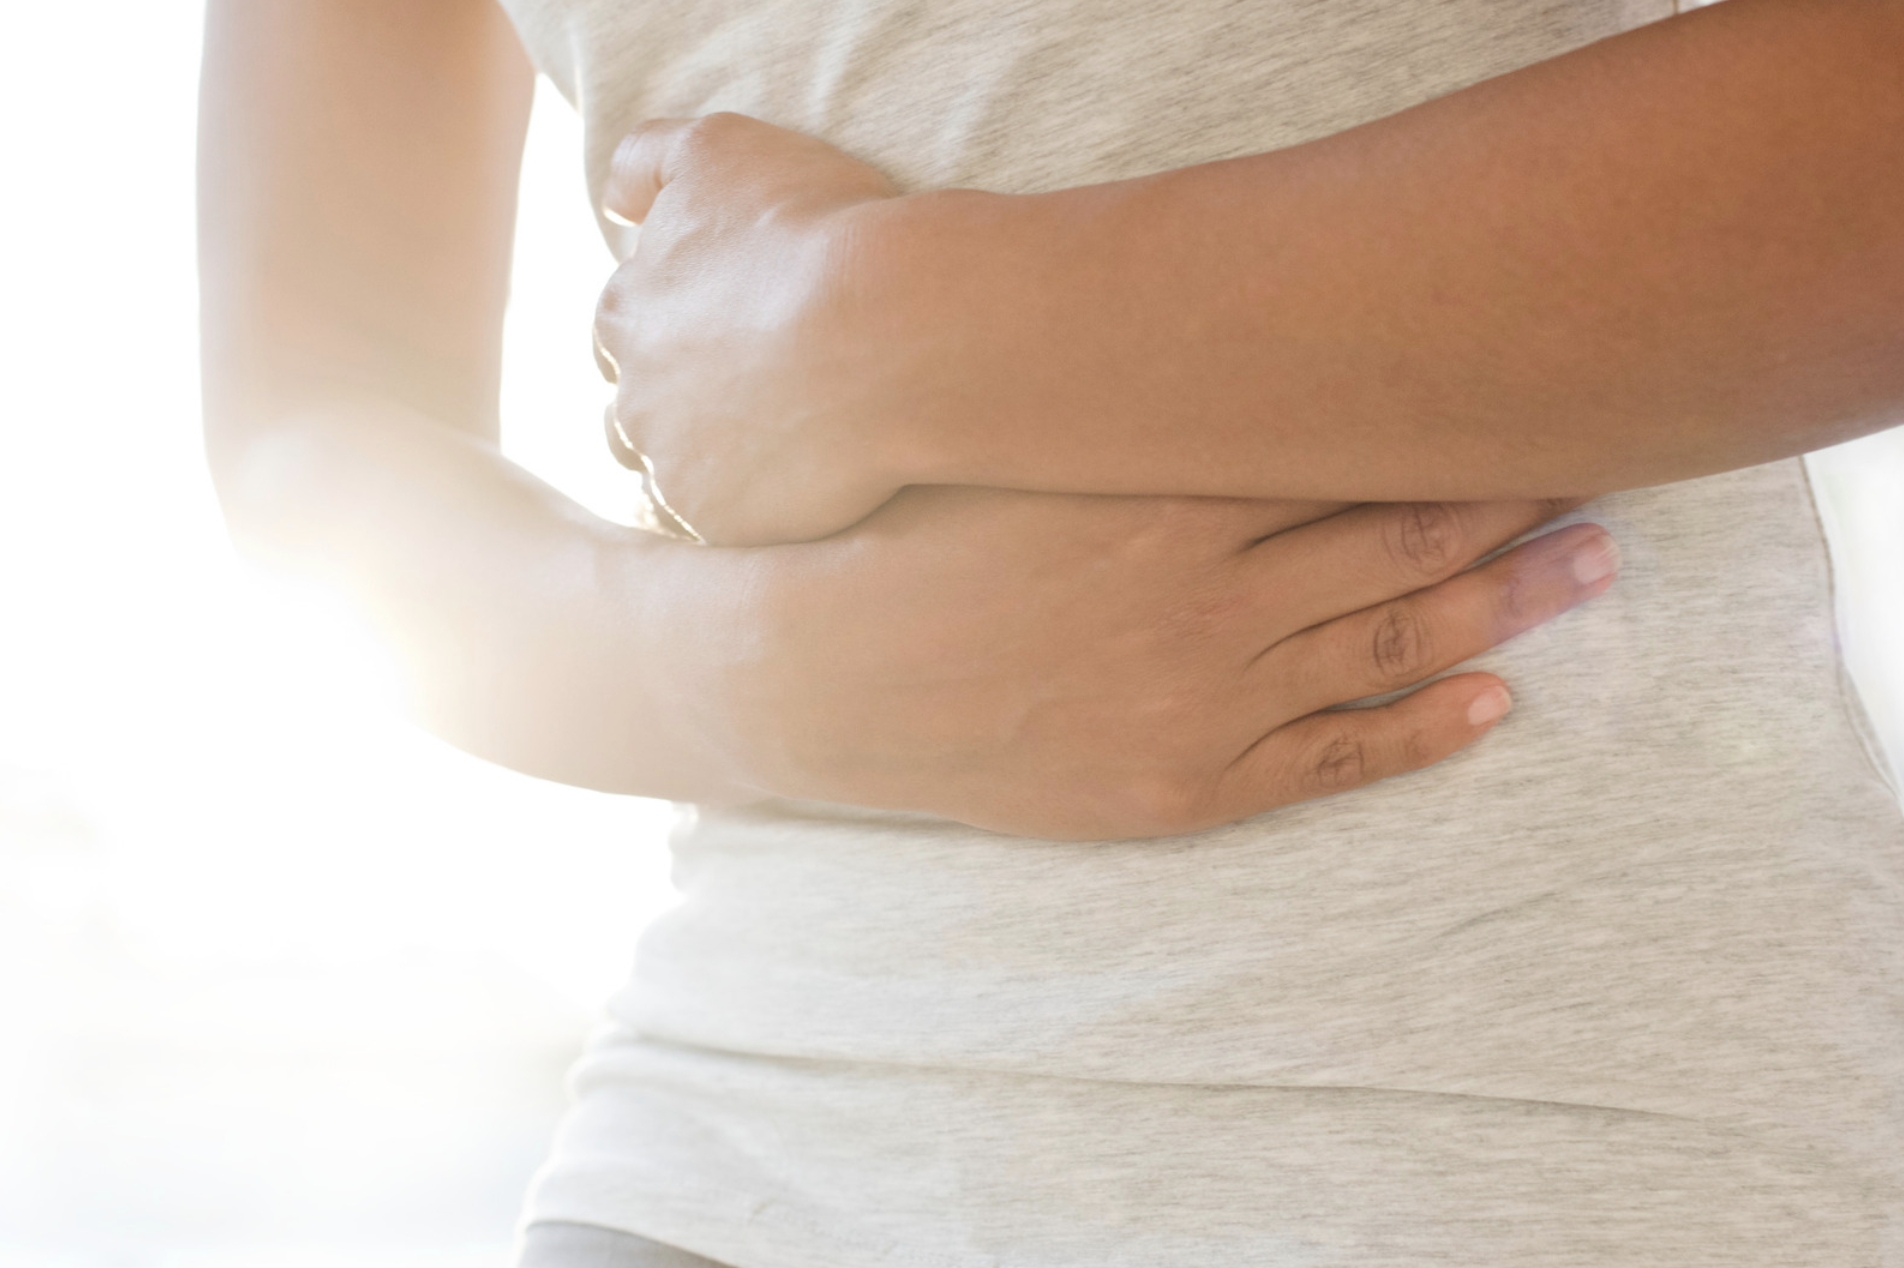 6 Things You Need to Know About IBS